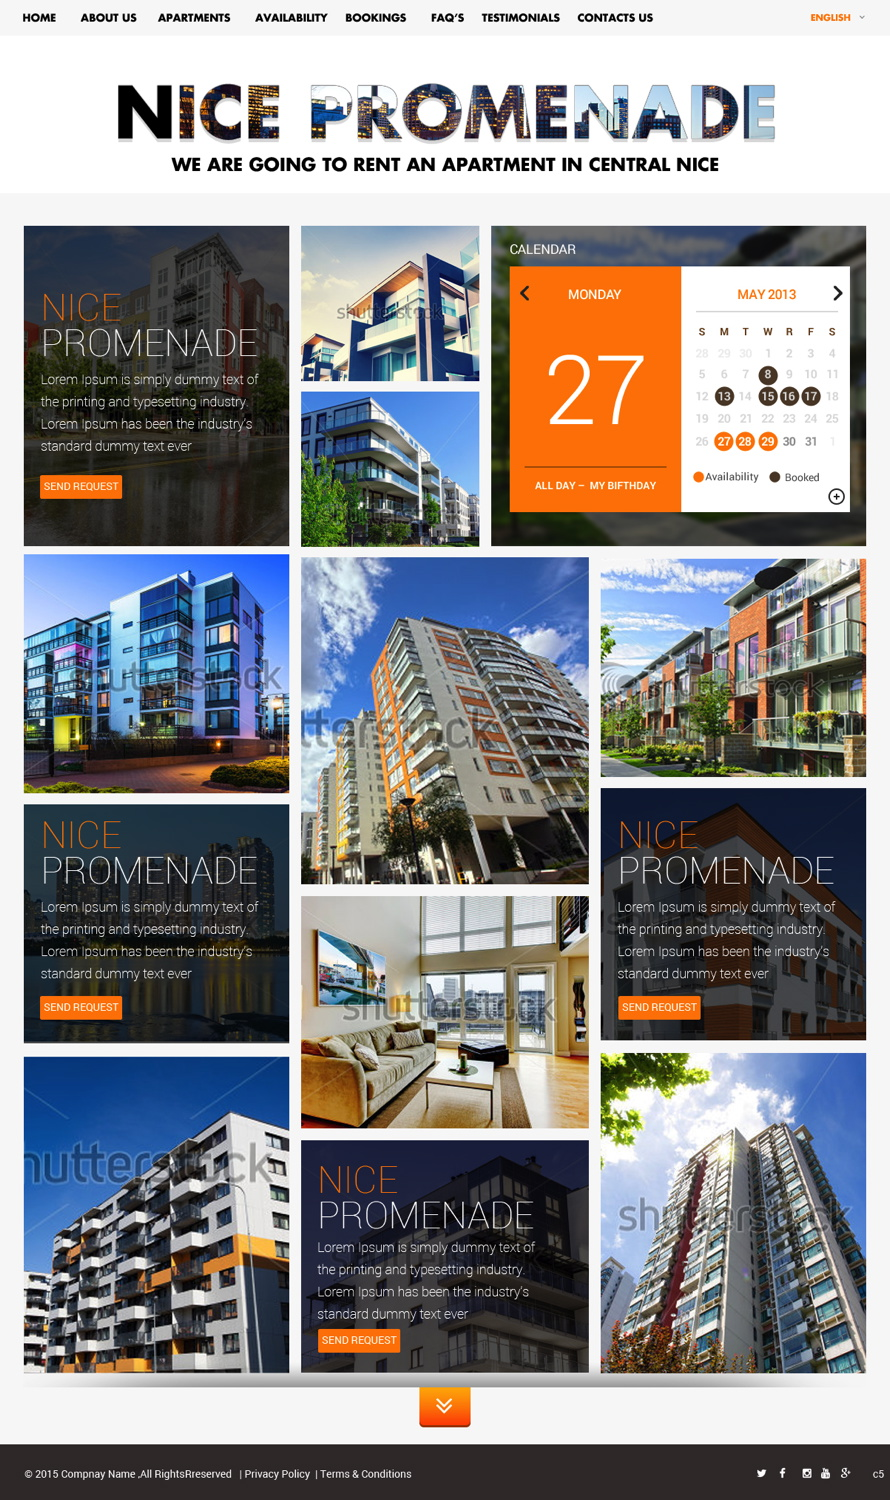 Apartment Website Design Web Design For Dag Honningsvågpb  Design #5390036